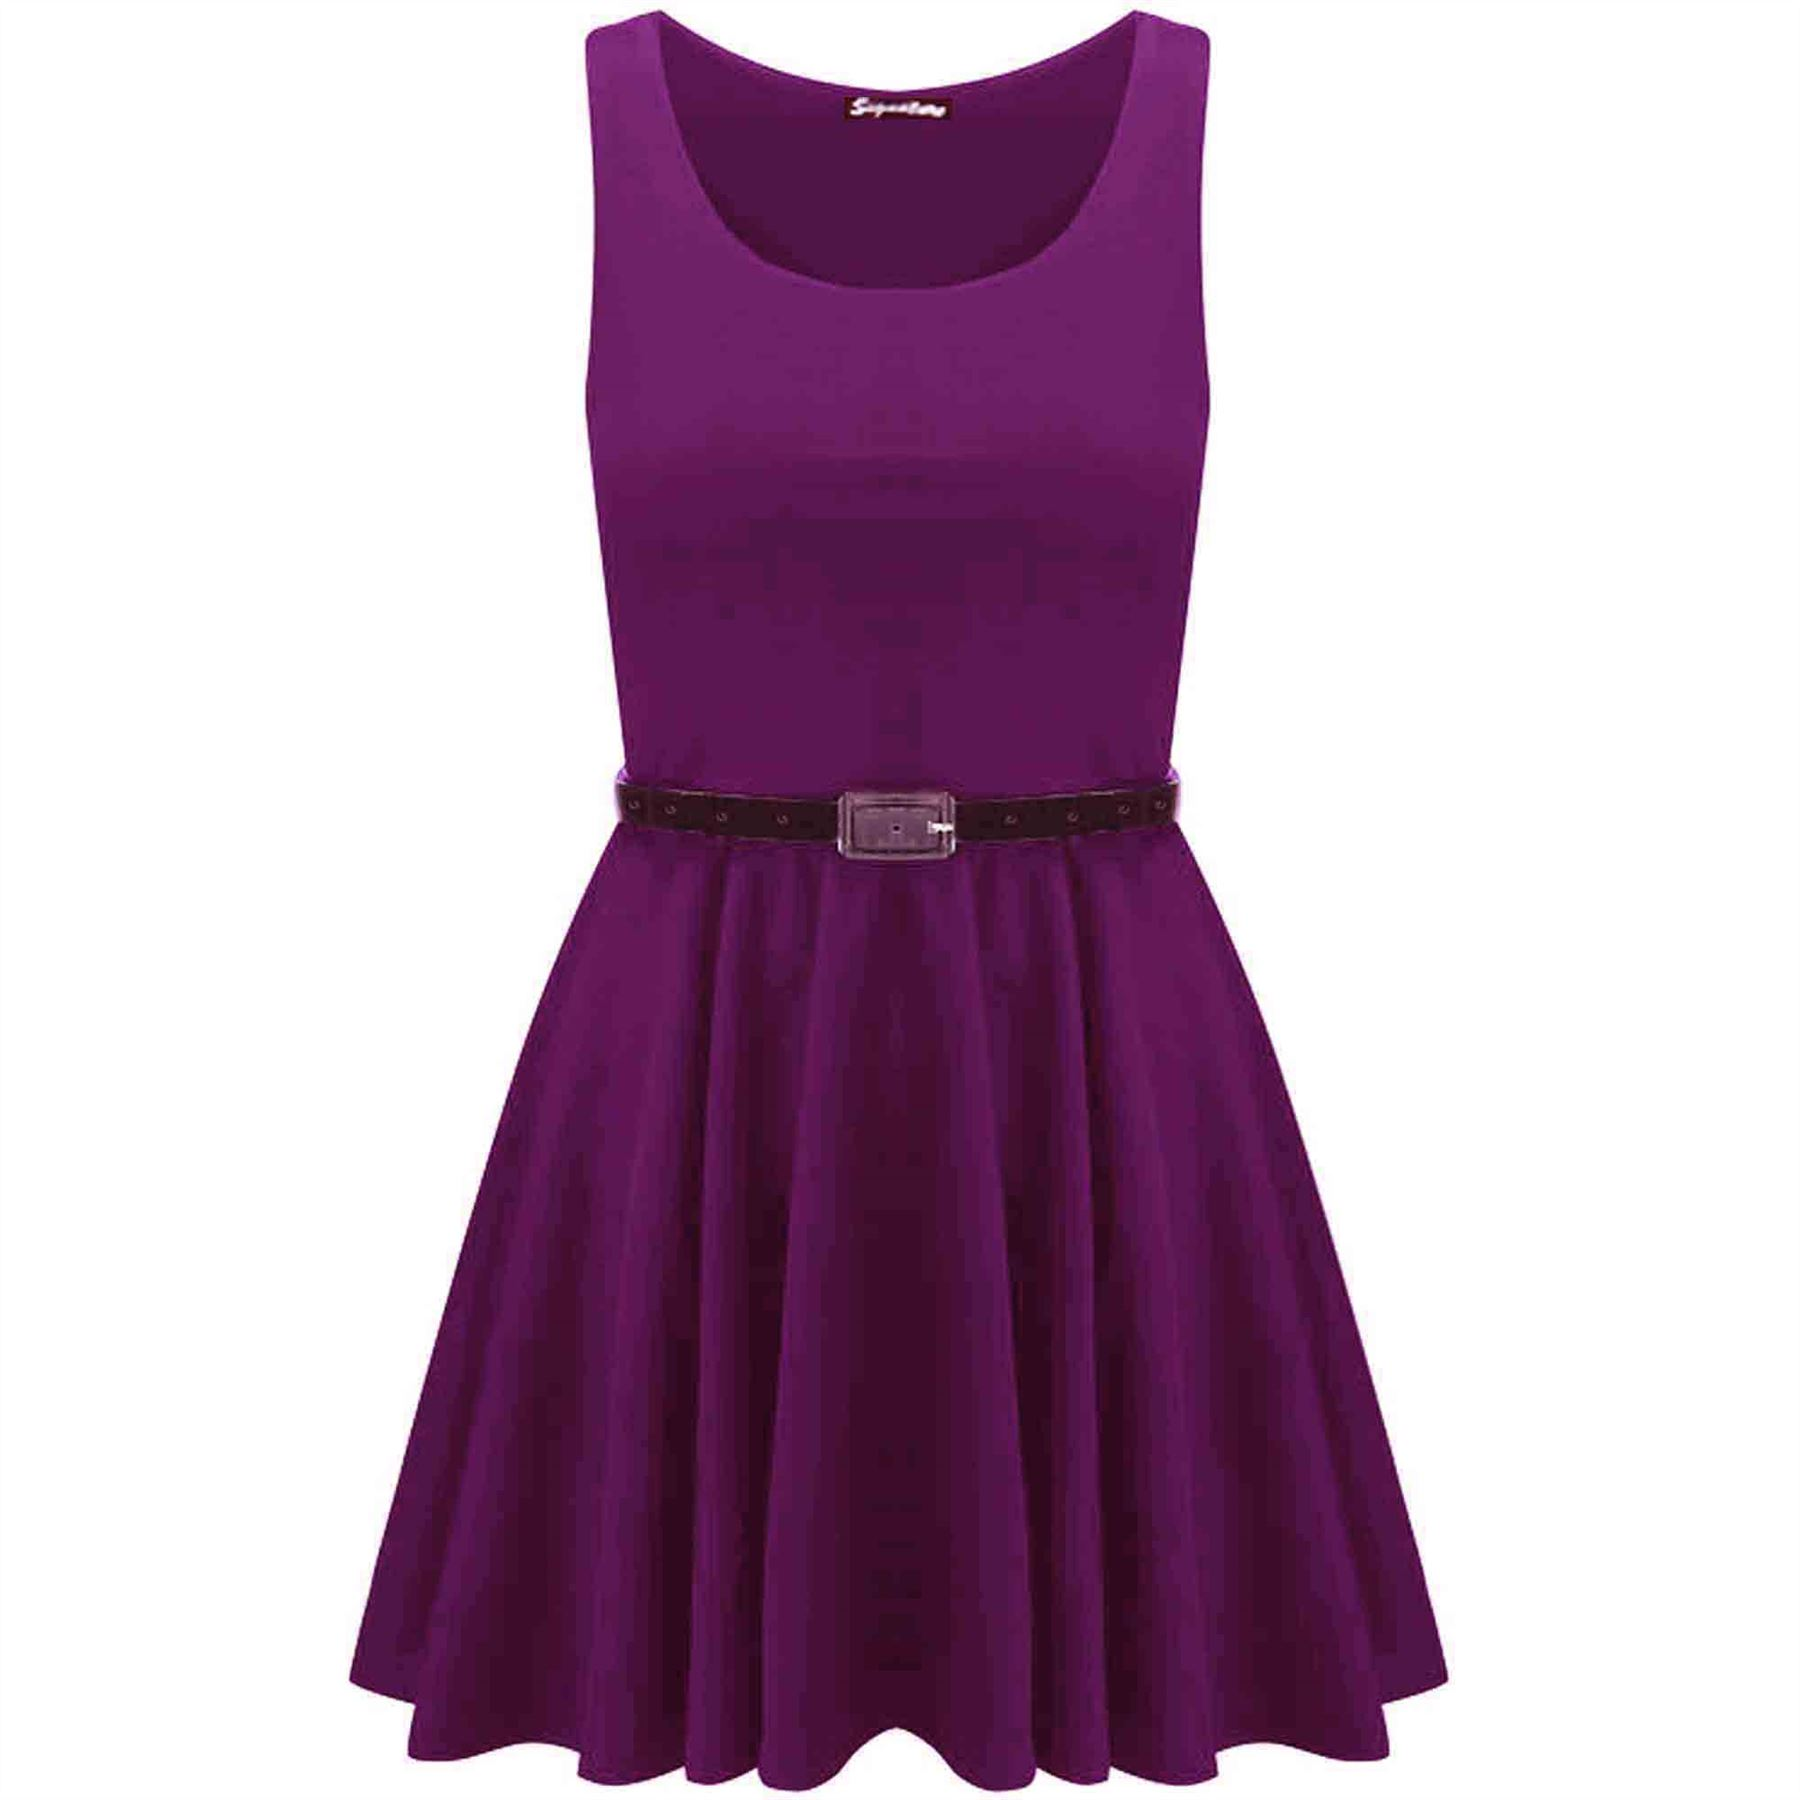 New-Womens-Ladies-Belted-Sleeveless-Franki-Flared-Party-Swing-Skater-Dress-Top thumbnail 28